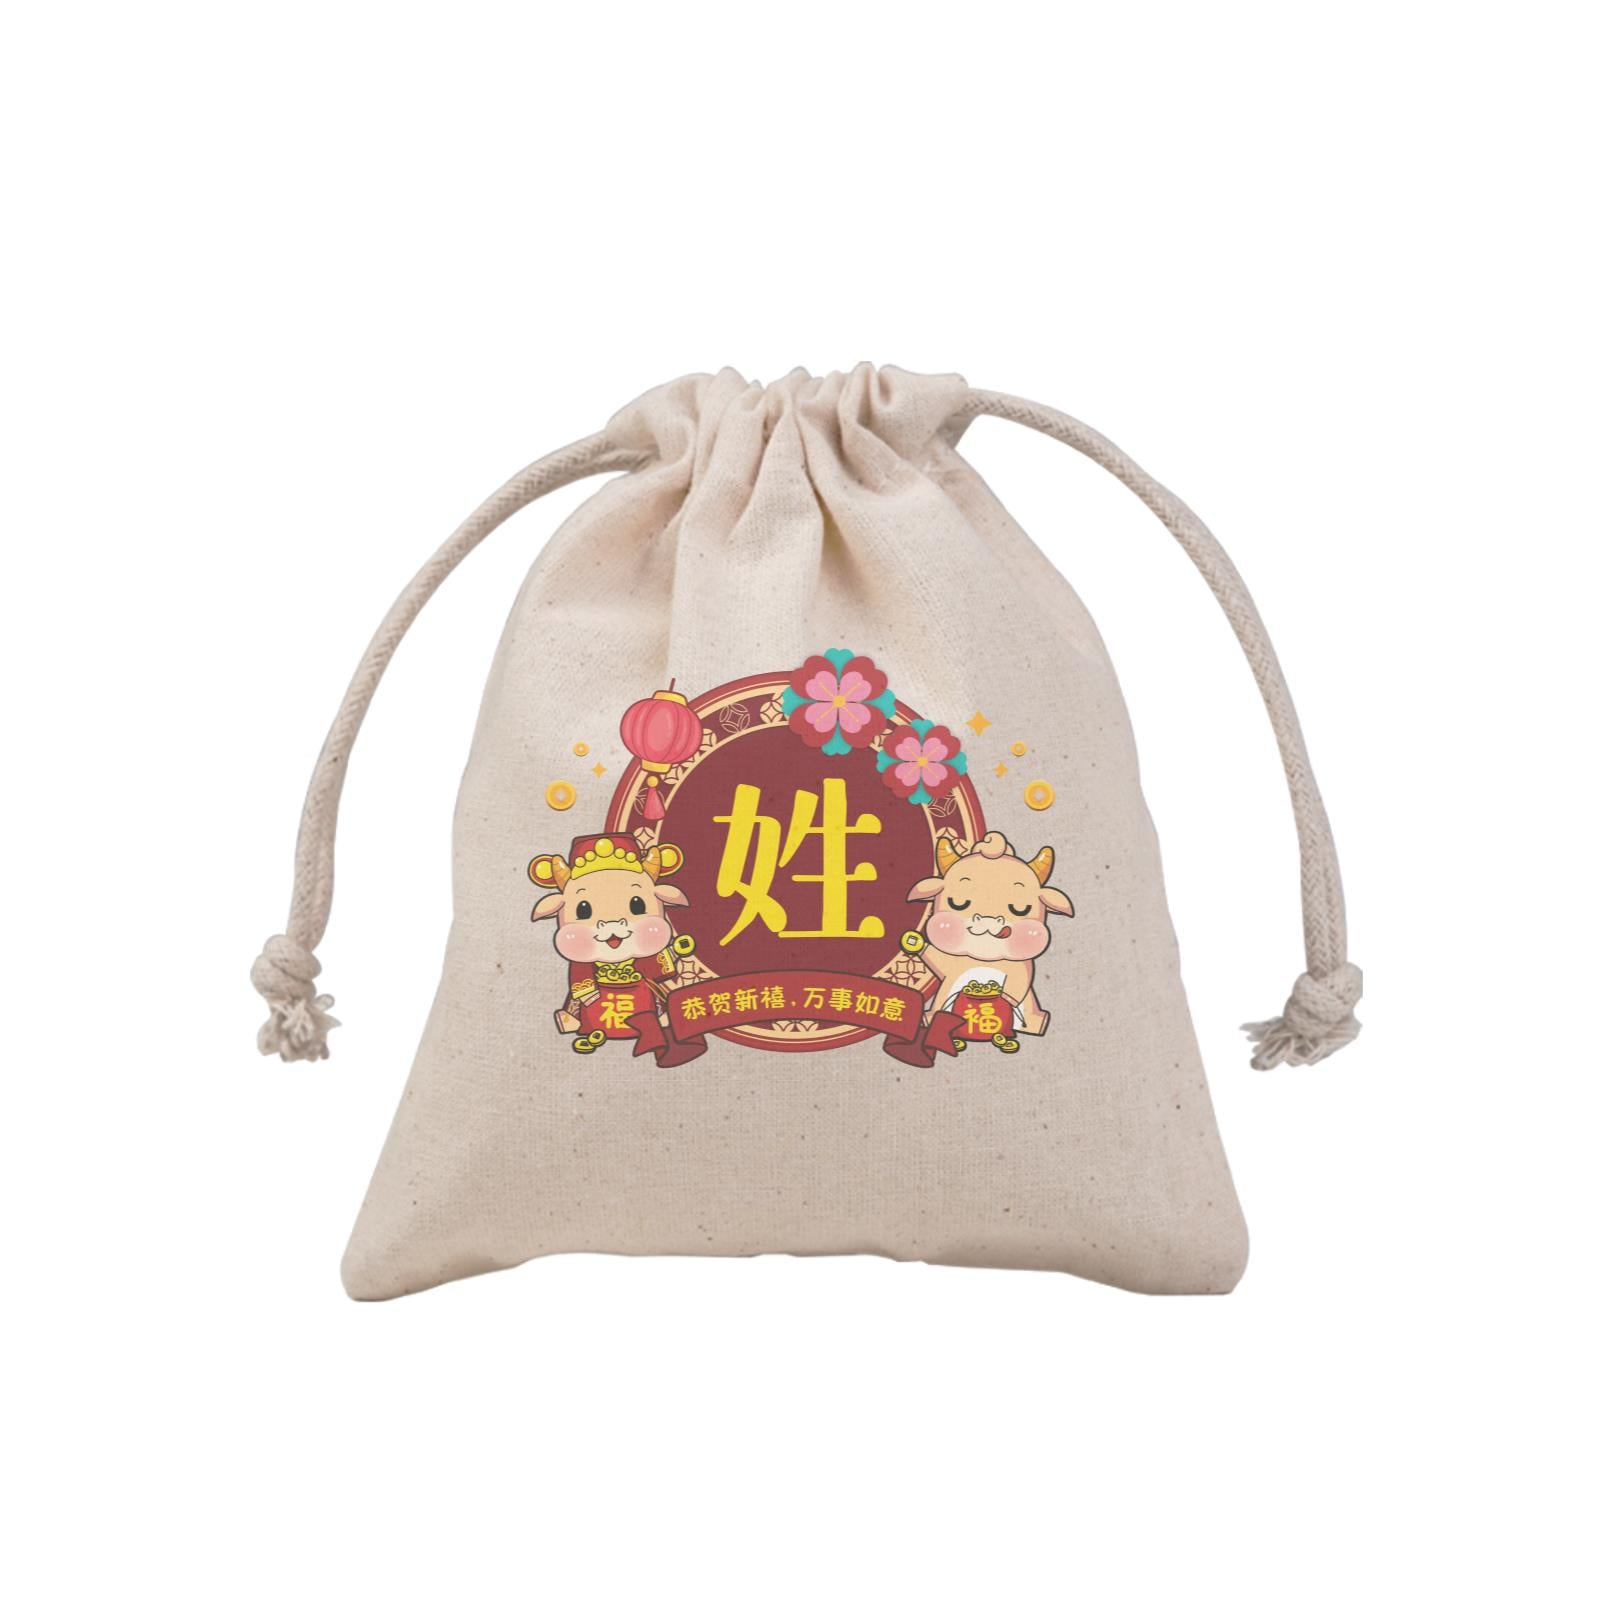 [CNY 2021] Golden Cow Blooming Gold Border With Customize Surname MP Mini Pouch